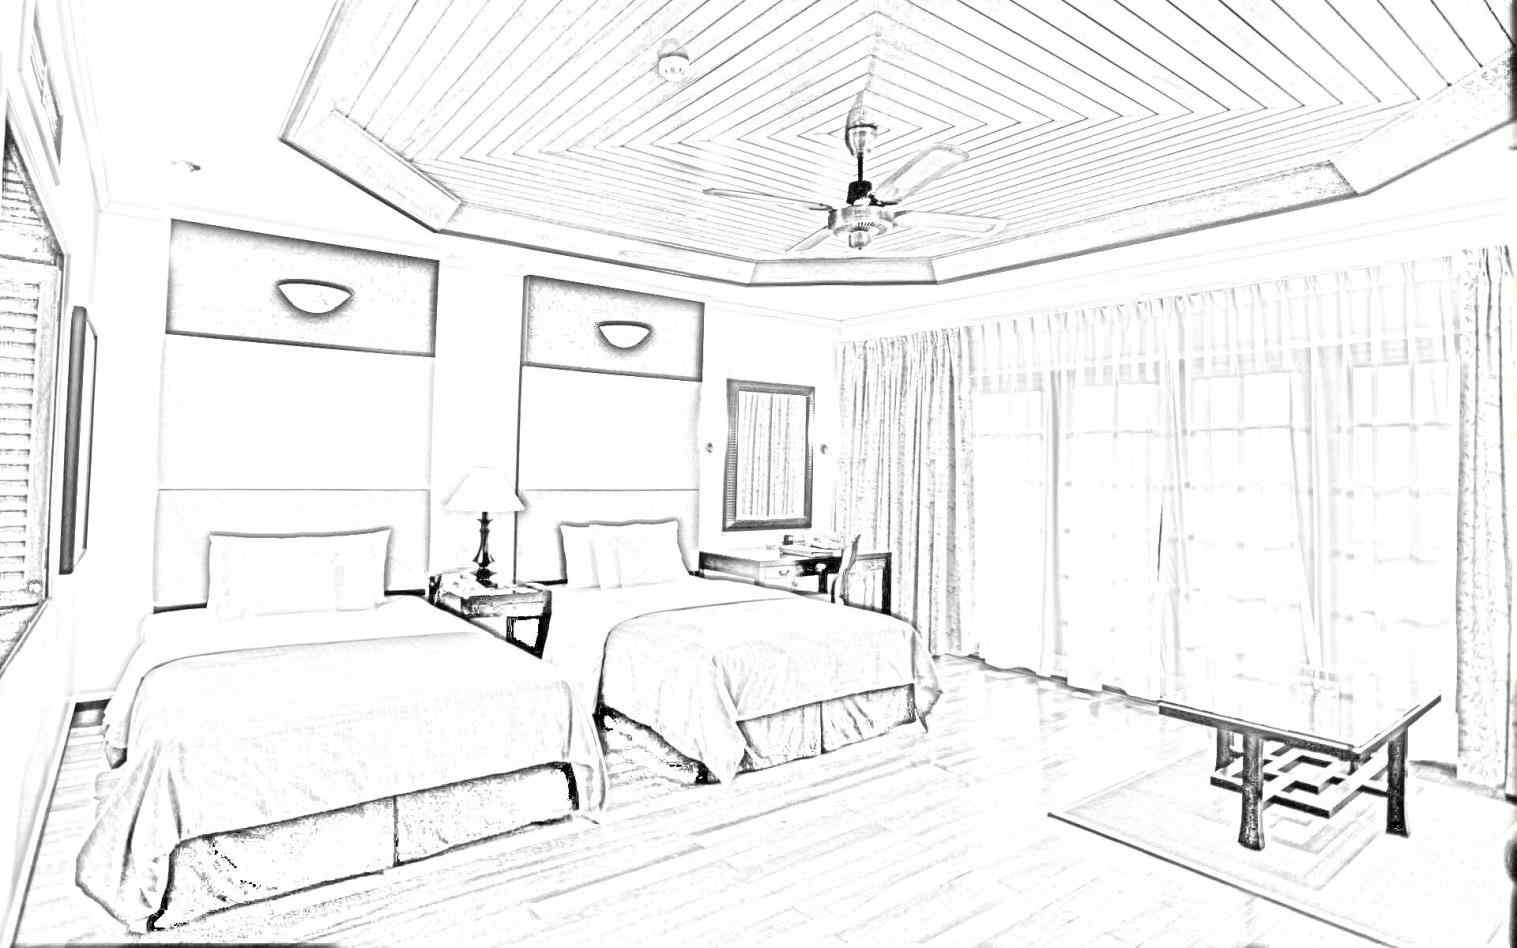 House Interior Drawing at GetDrawings.com | Free for ...